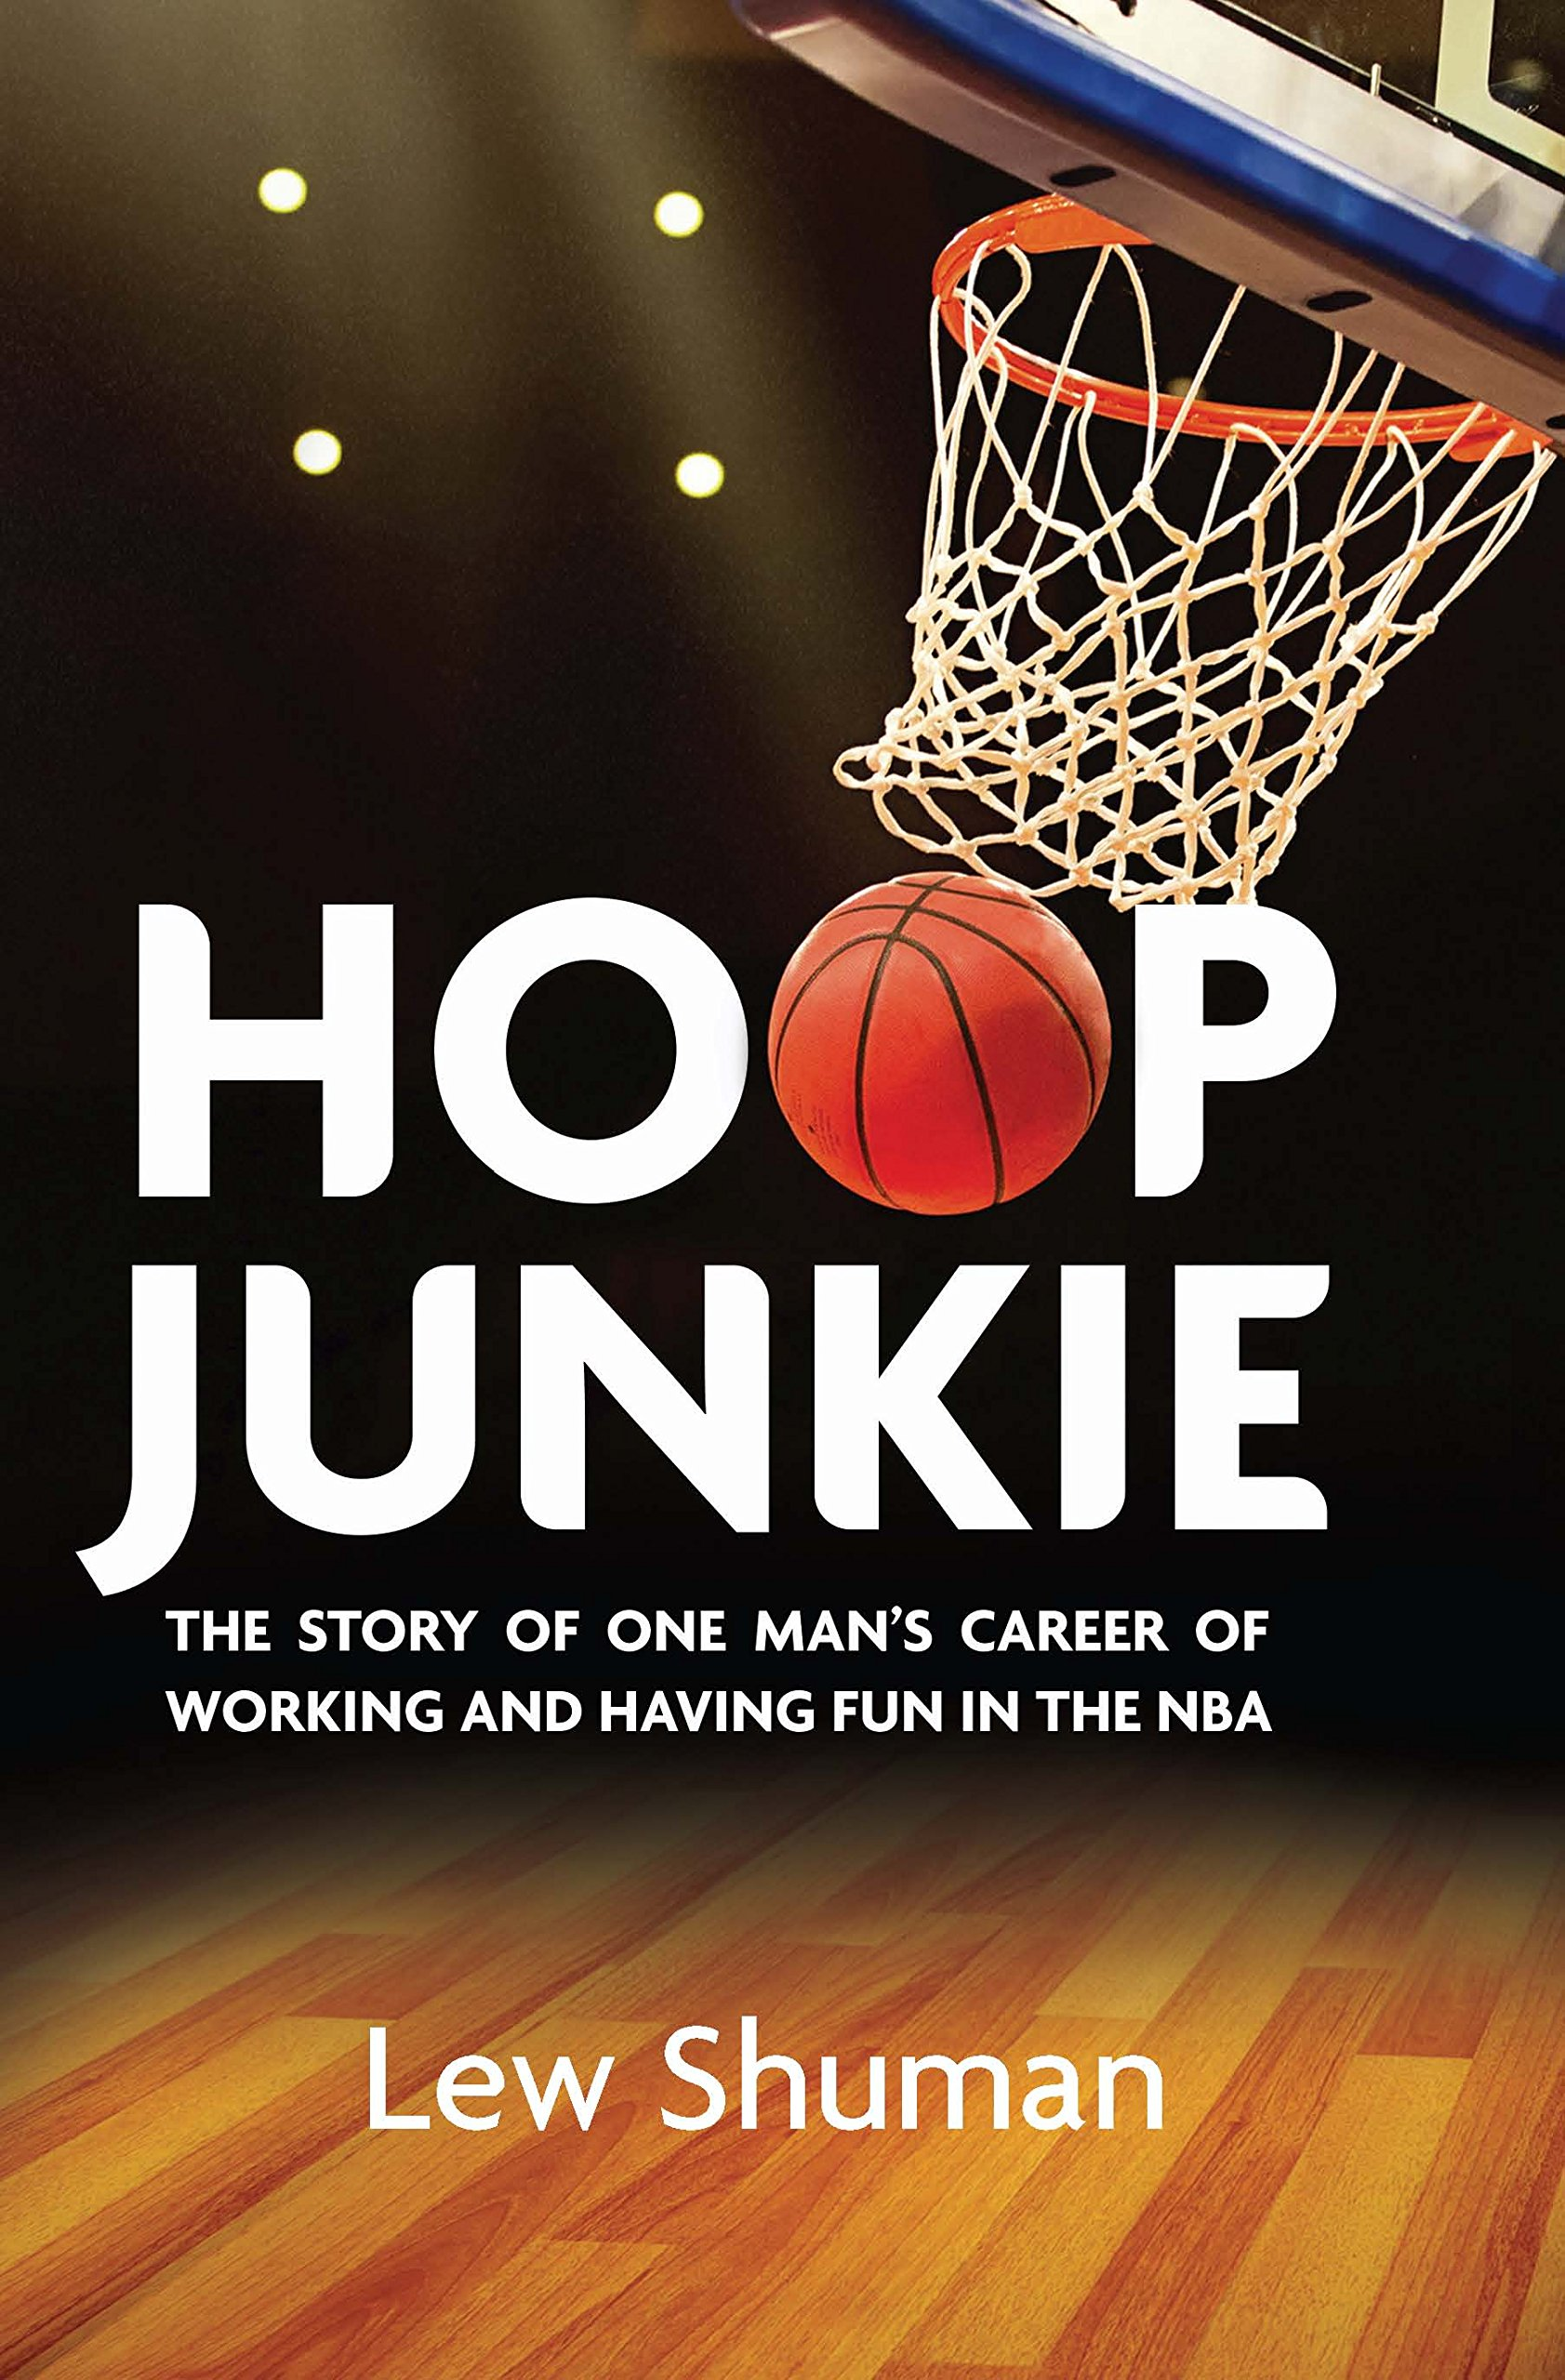 Image OfHoop Junkie: The Story Of One Man's Career Working And Having Fun With Players, Coaches And Broadcasters Of The NBA. (Engl...